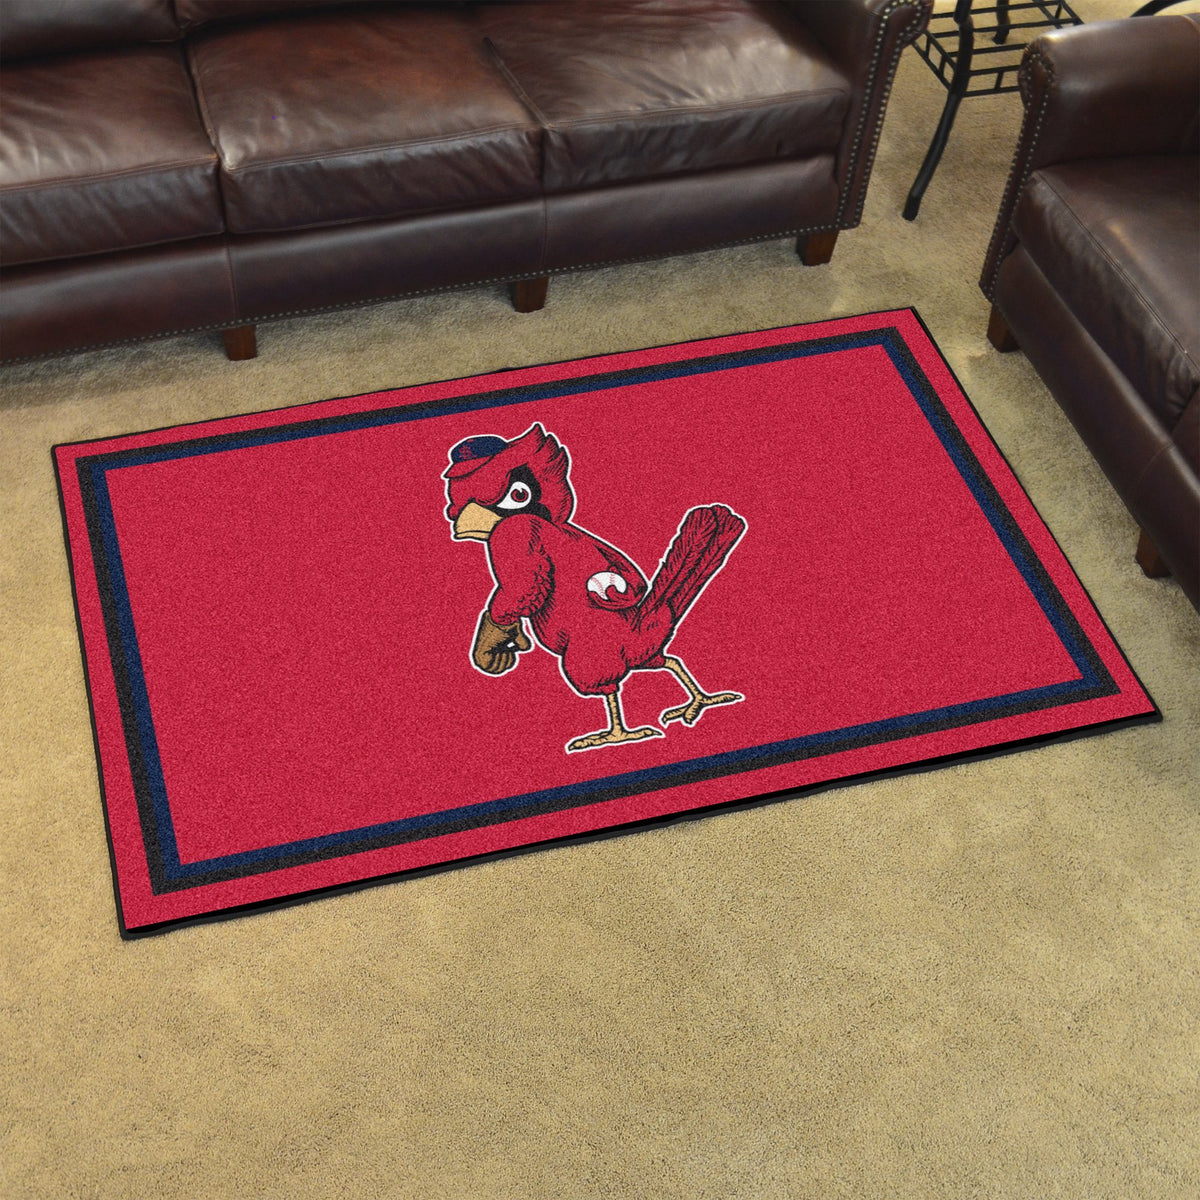 MLB Retro - 4' x 6' Rug MLB Retro Mats, Plush Rugs, 4x6 Rug, MLB, Home Fan Mats St. Louis Cardinals 2